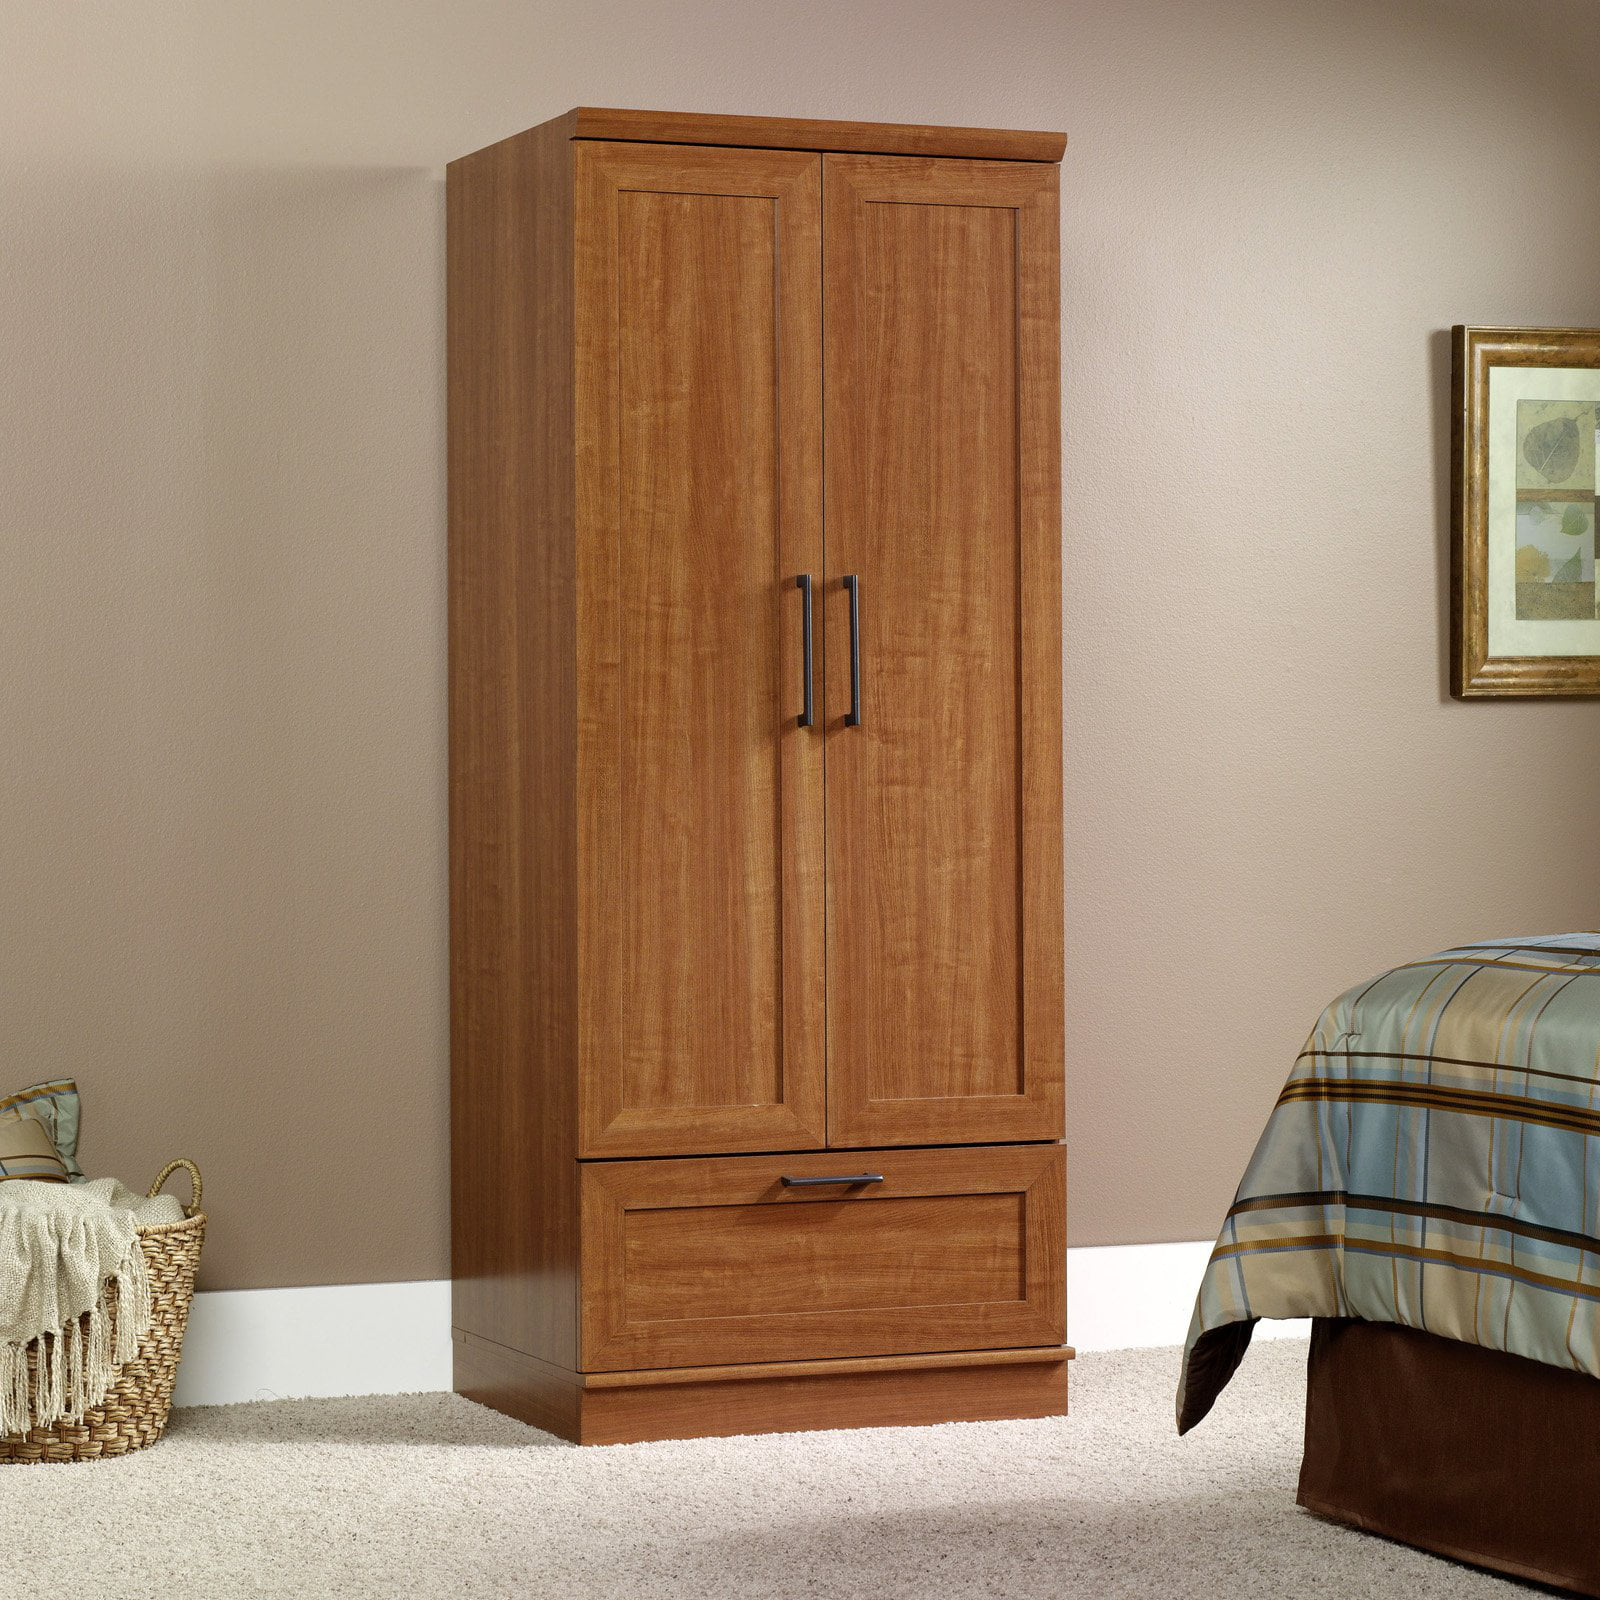 Details about Wardrobe Closet Armoire Storage Bedroom Furniture Clothes  Organizer Wood Cabinet